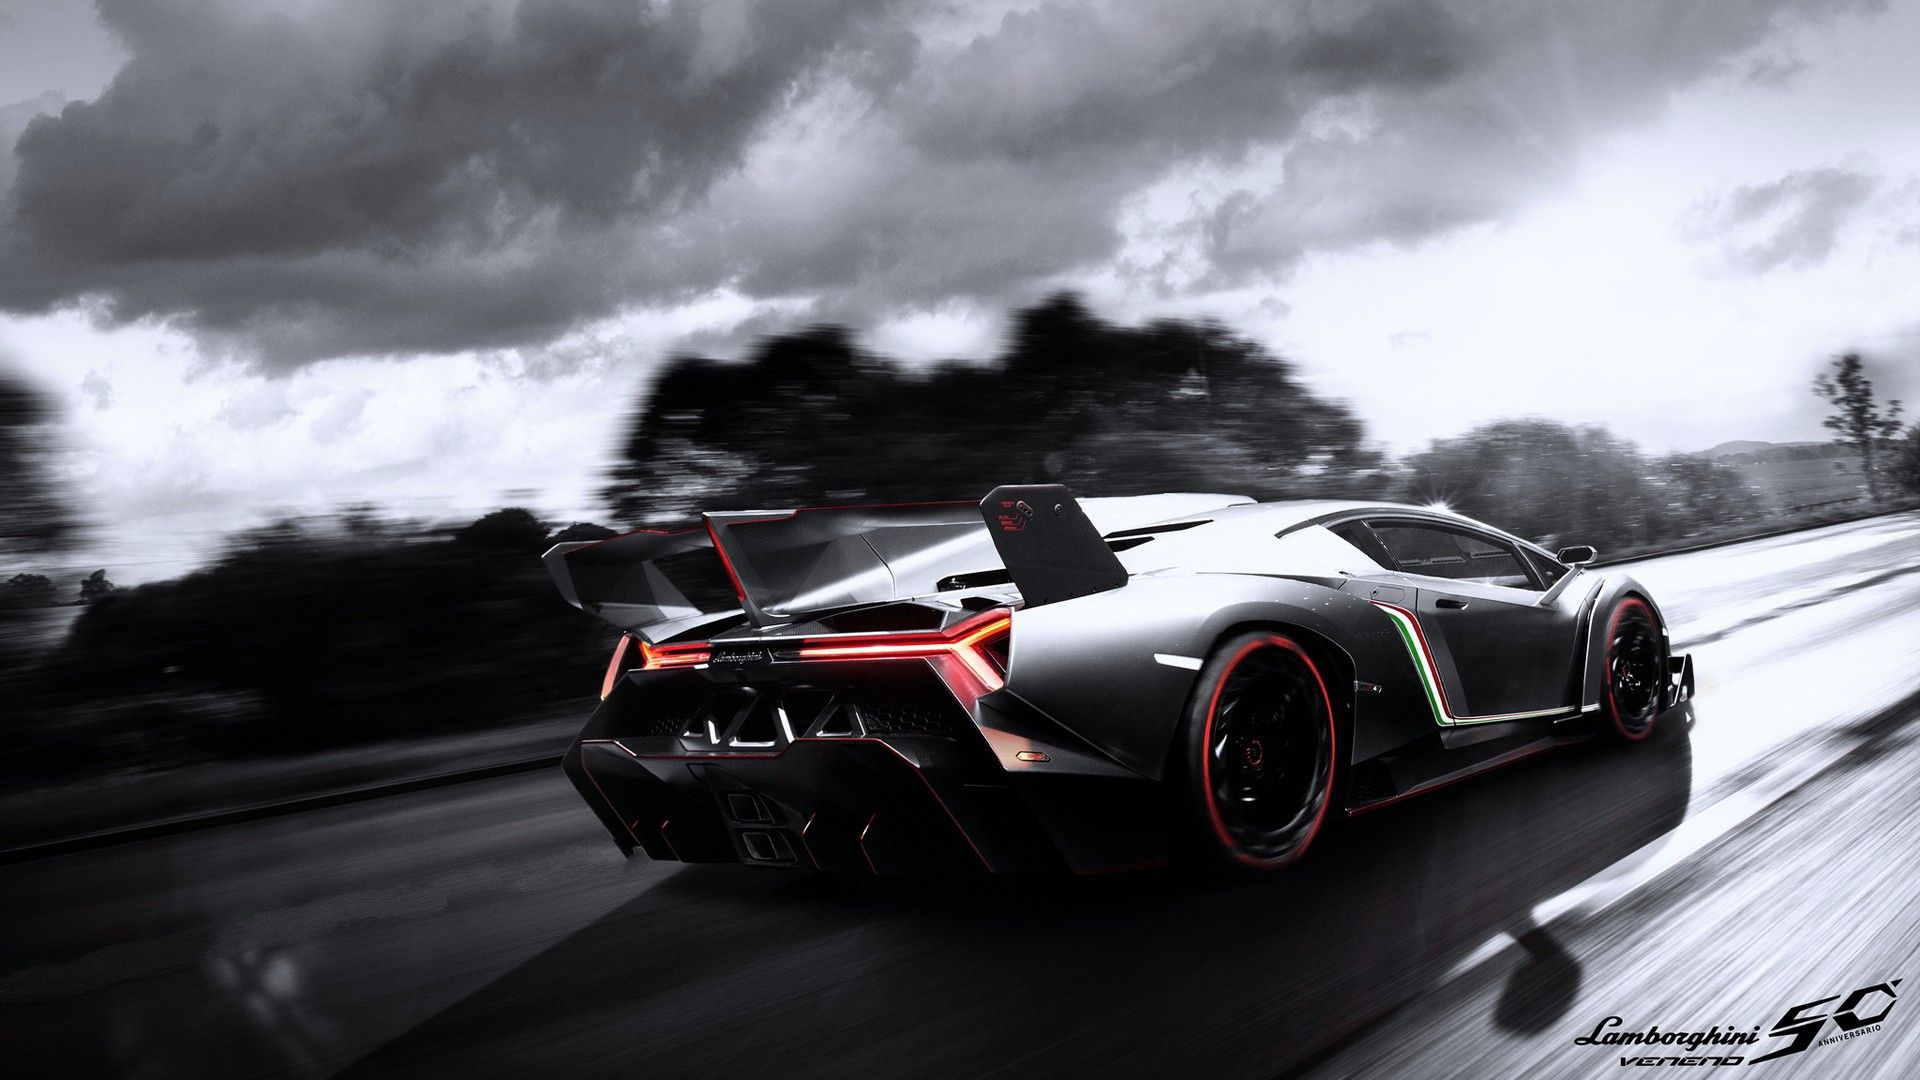 52 Veneno Wallpaper On Wallpapersafari